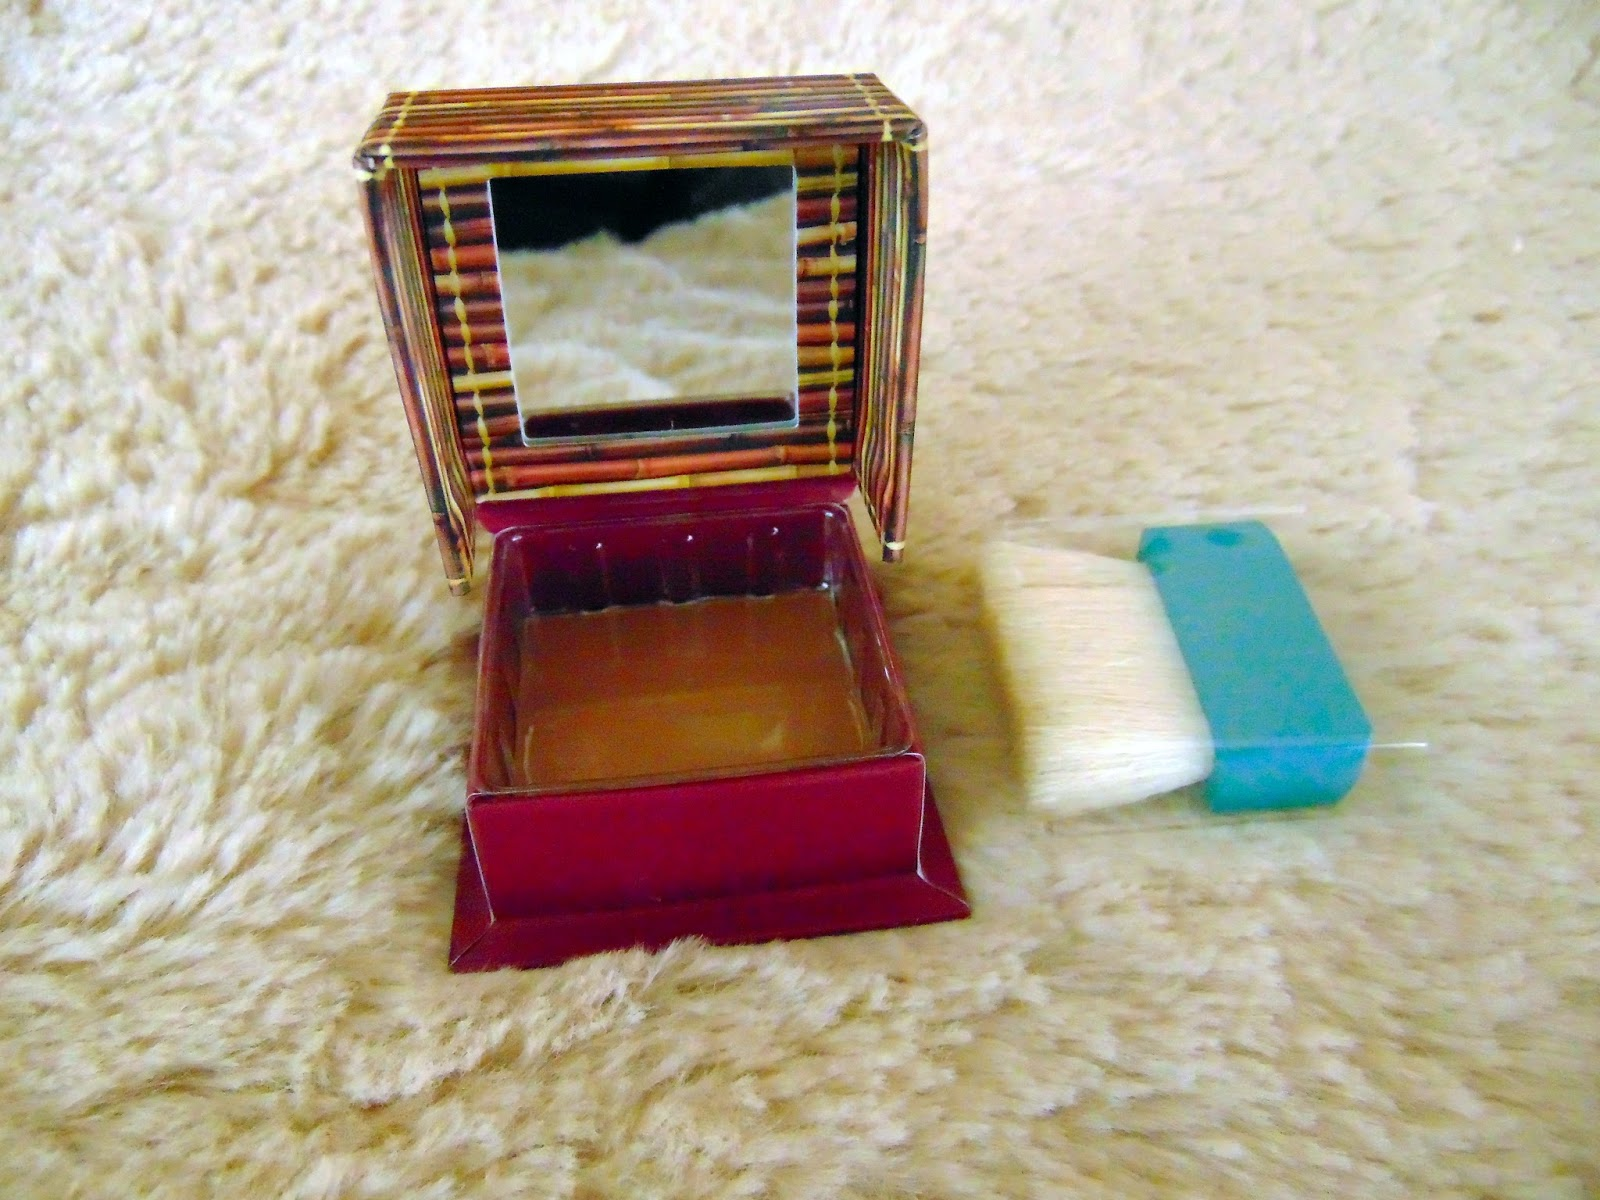 Review hoola bronzer, benefit. Before and after photos. Reseña hoola bronzer antes y después, primera impresión